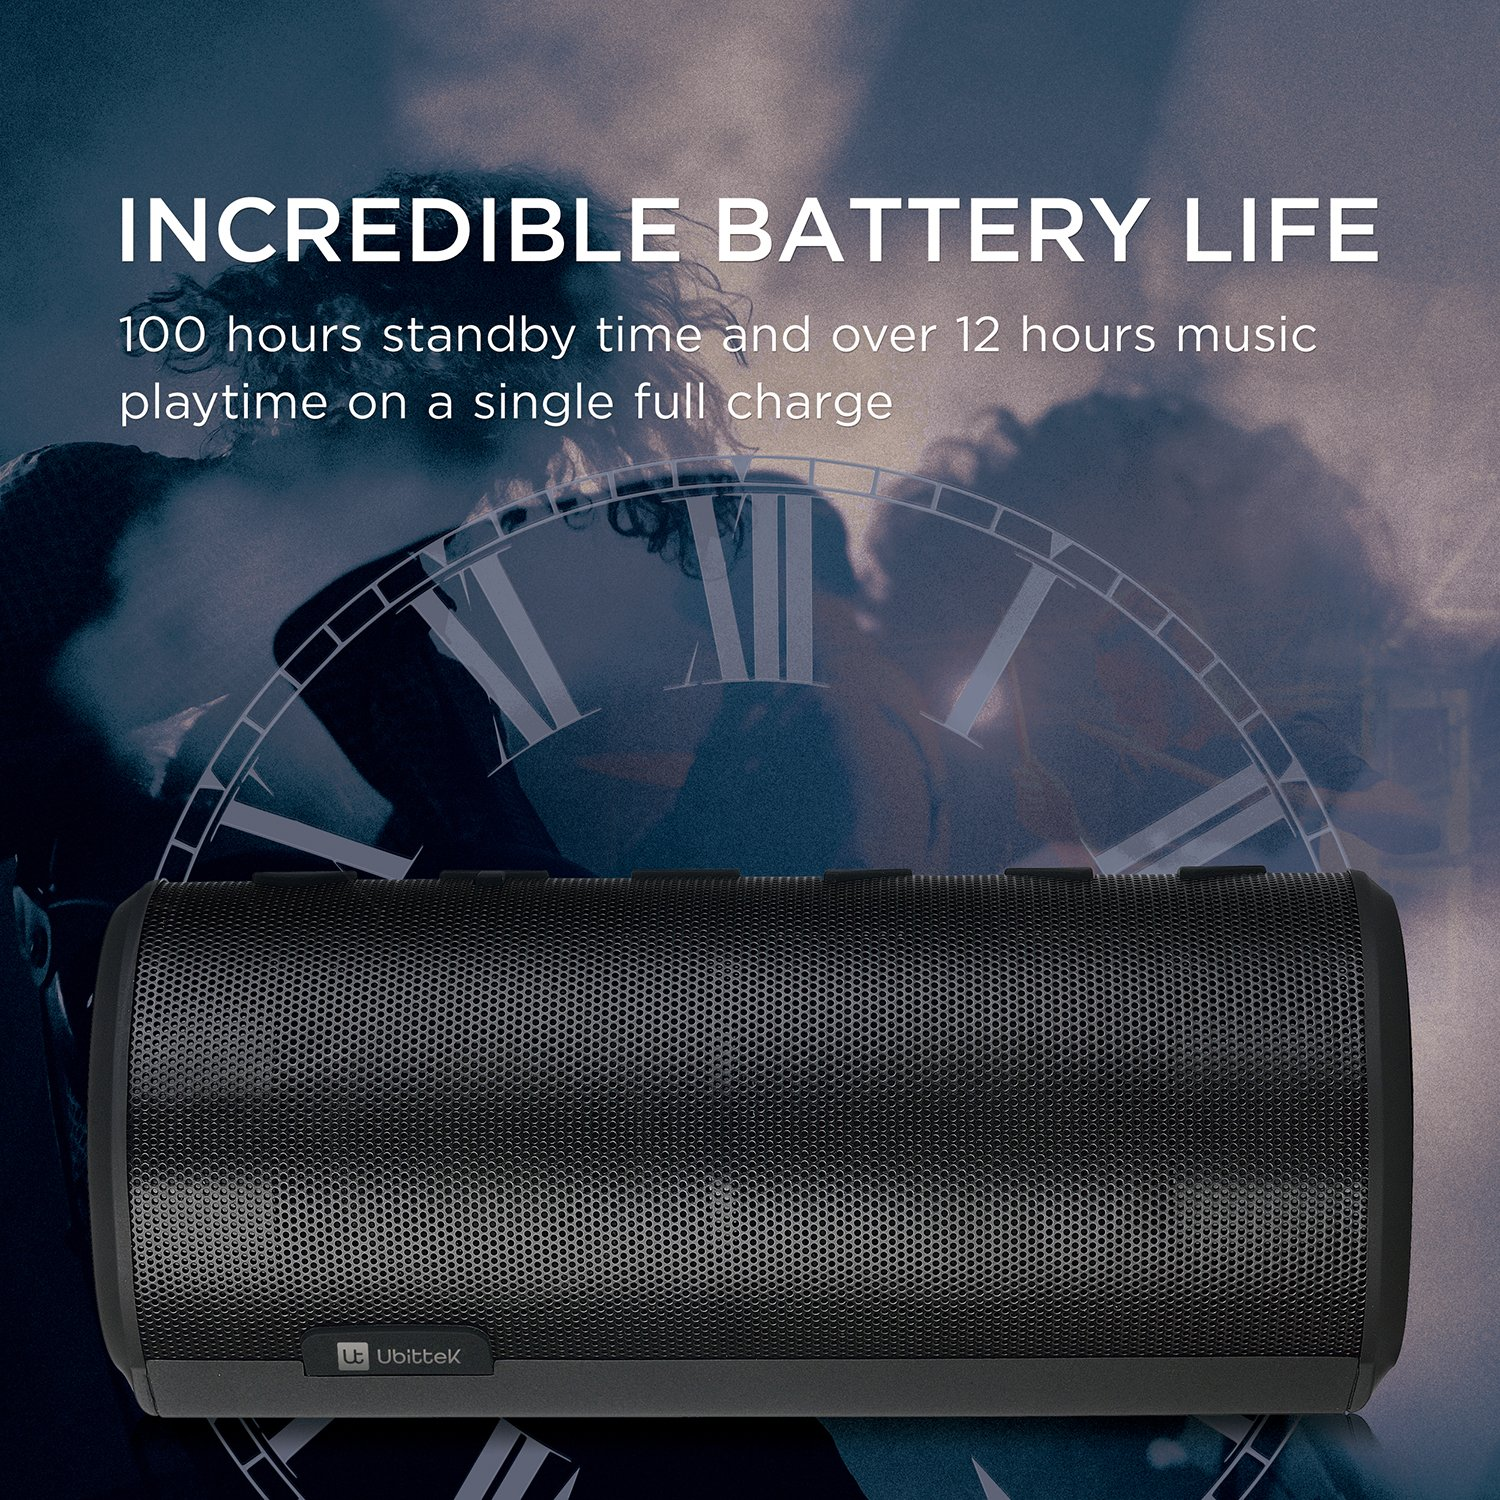 Ubittek 20w Wireless Bluetooth Speaker With Ultra Bass Enhancement Magic Jack Wiring Diagram 360 Degree Surround Sound Over 12 Hours Playtime And Hands Free Call